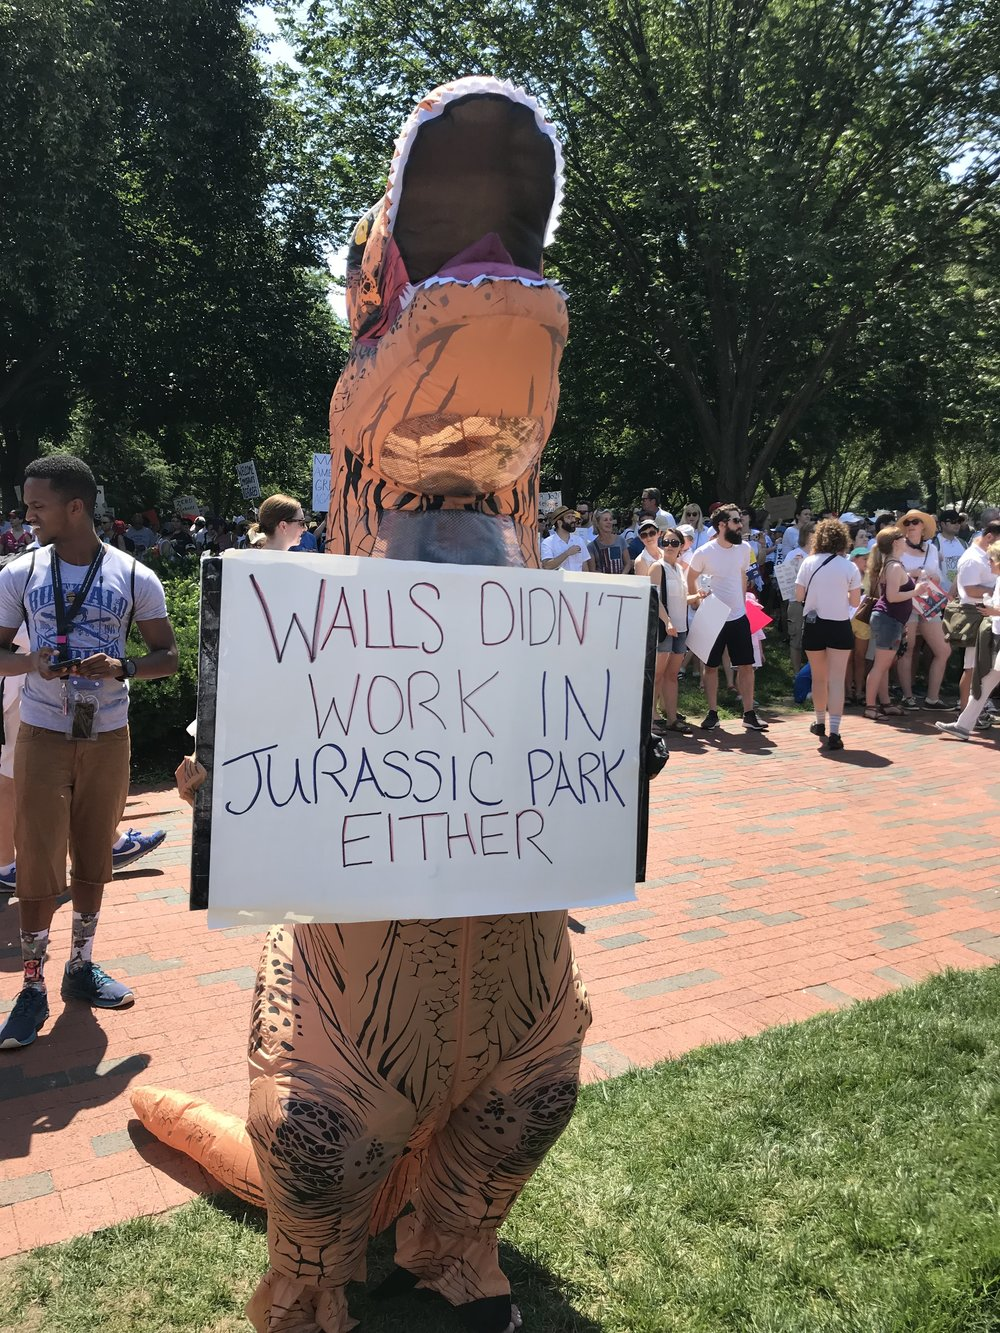 Signs at the Immigration Rally (June 30, 2018)